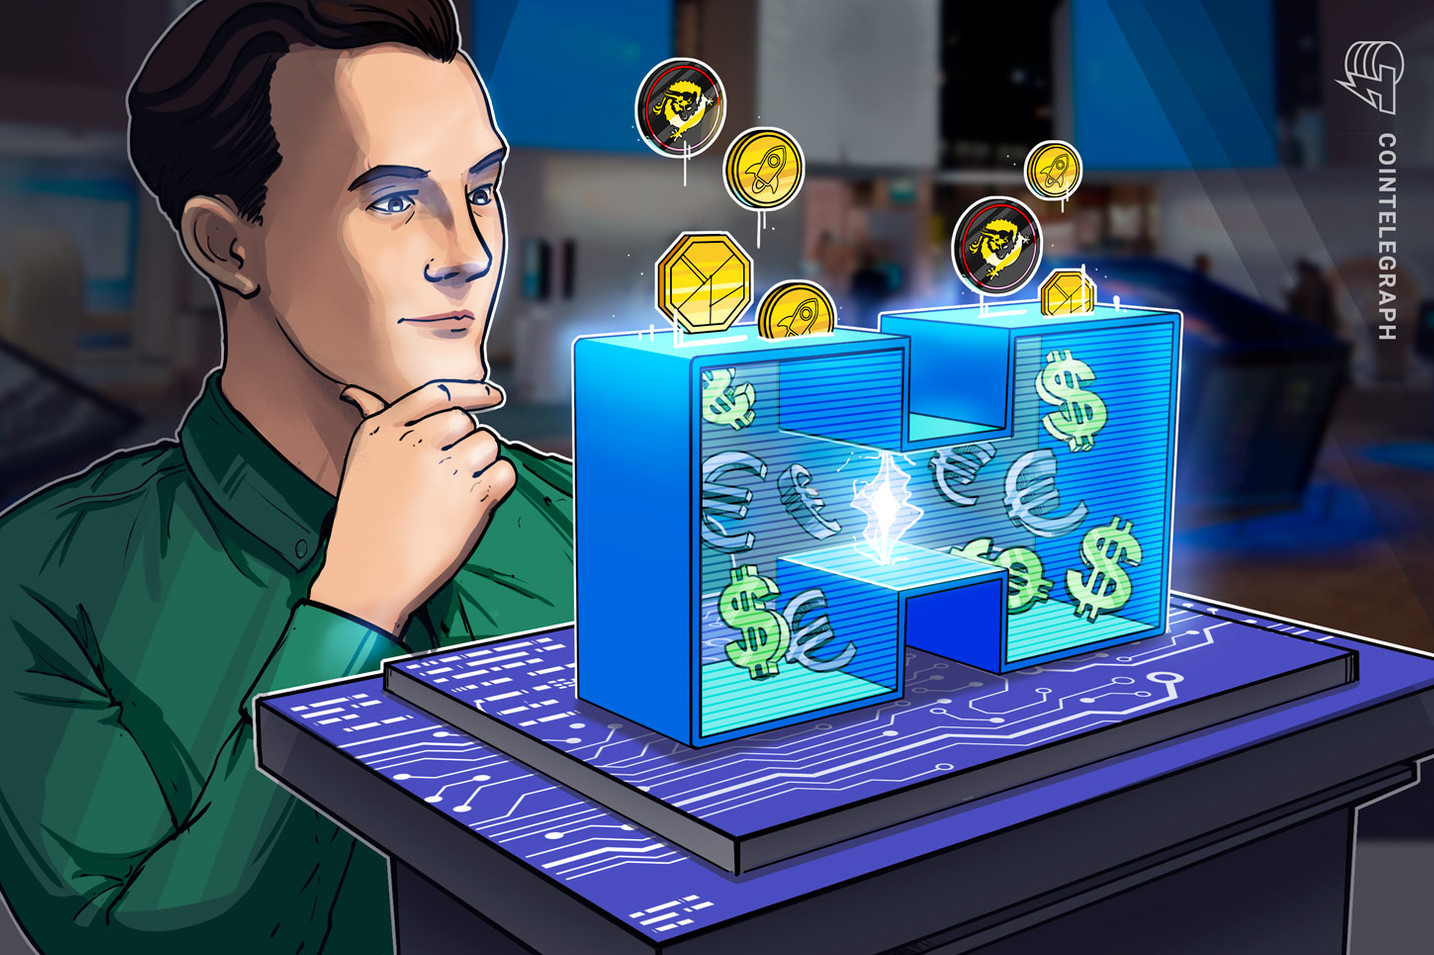 Fintech Platform Expands by Offering Wallets and Exchange Tools for 'Crypto Spring'